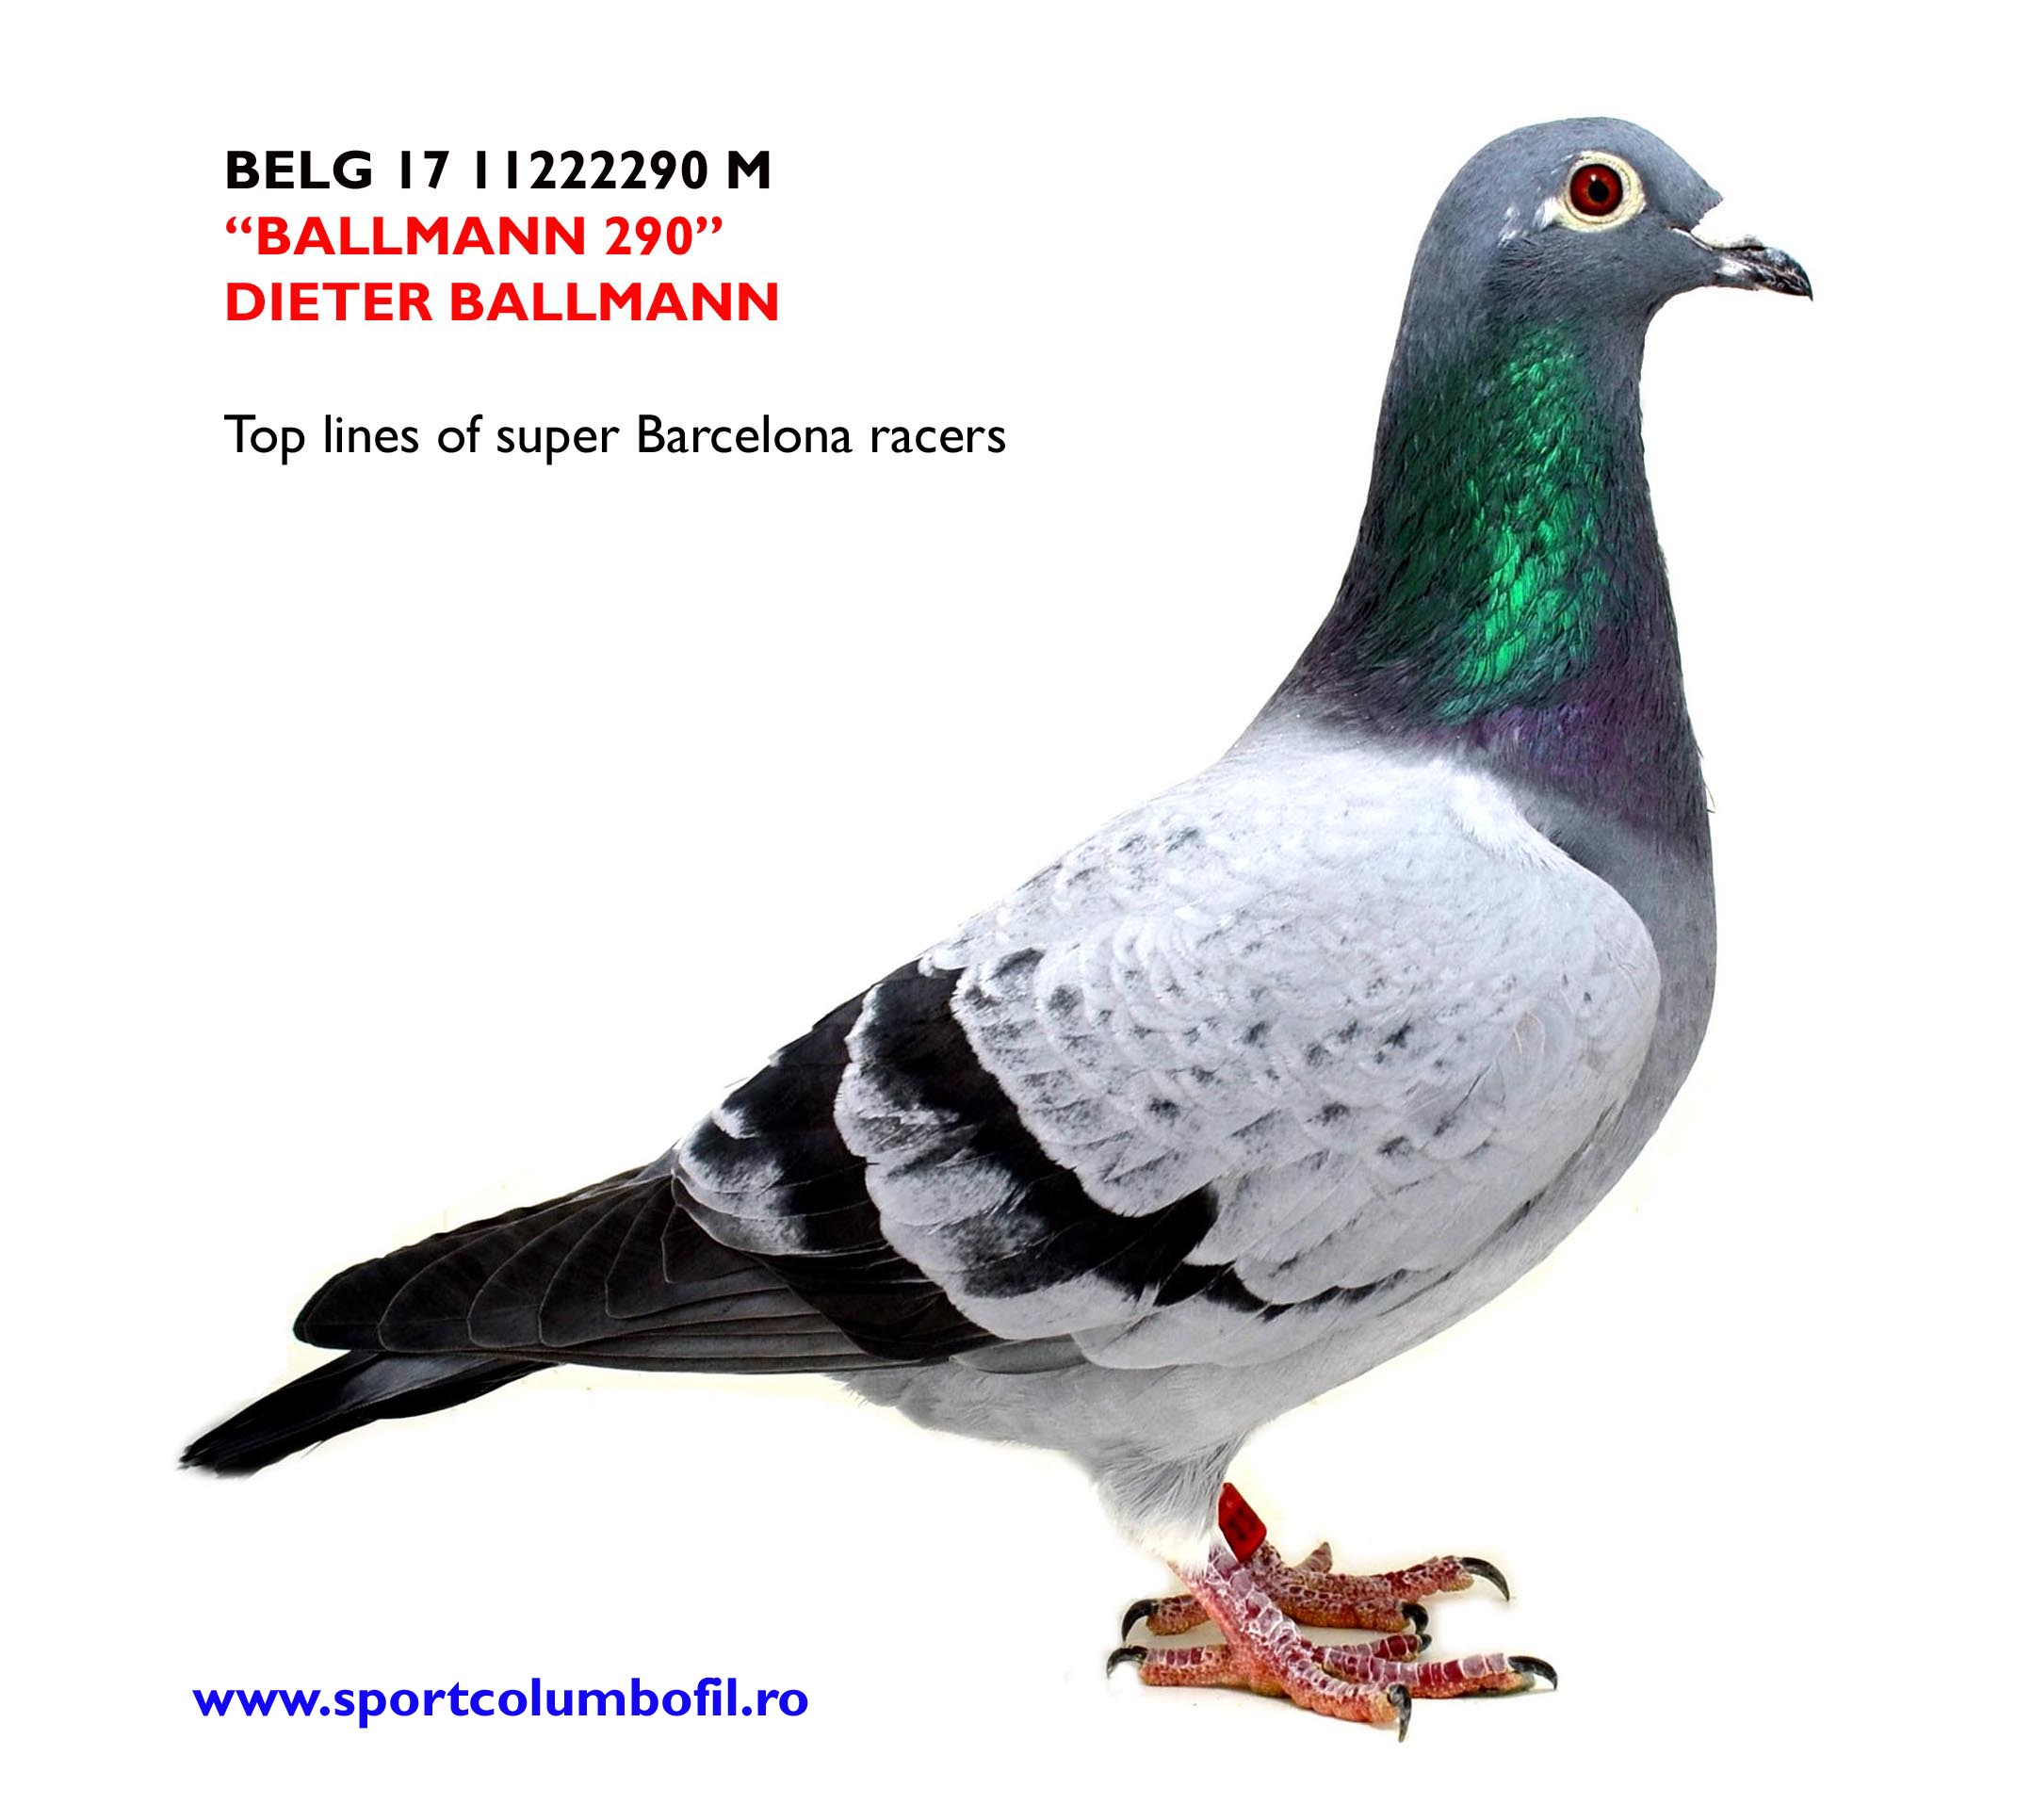 BELG 17 1122290 M - Dieter Ballmann - strong lines of Barcelona winners